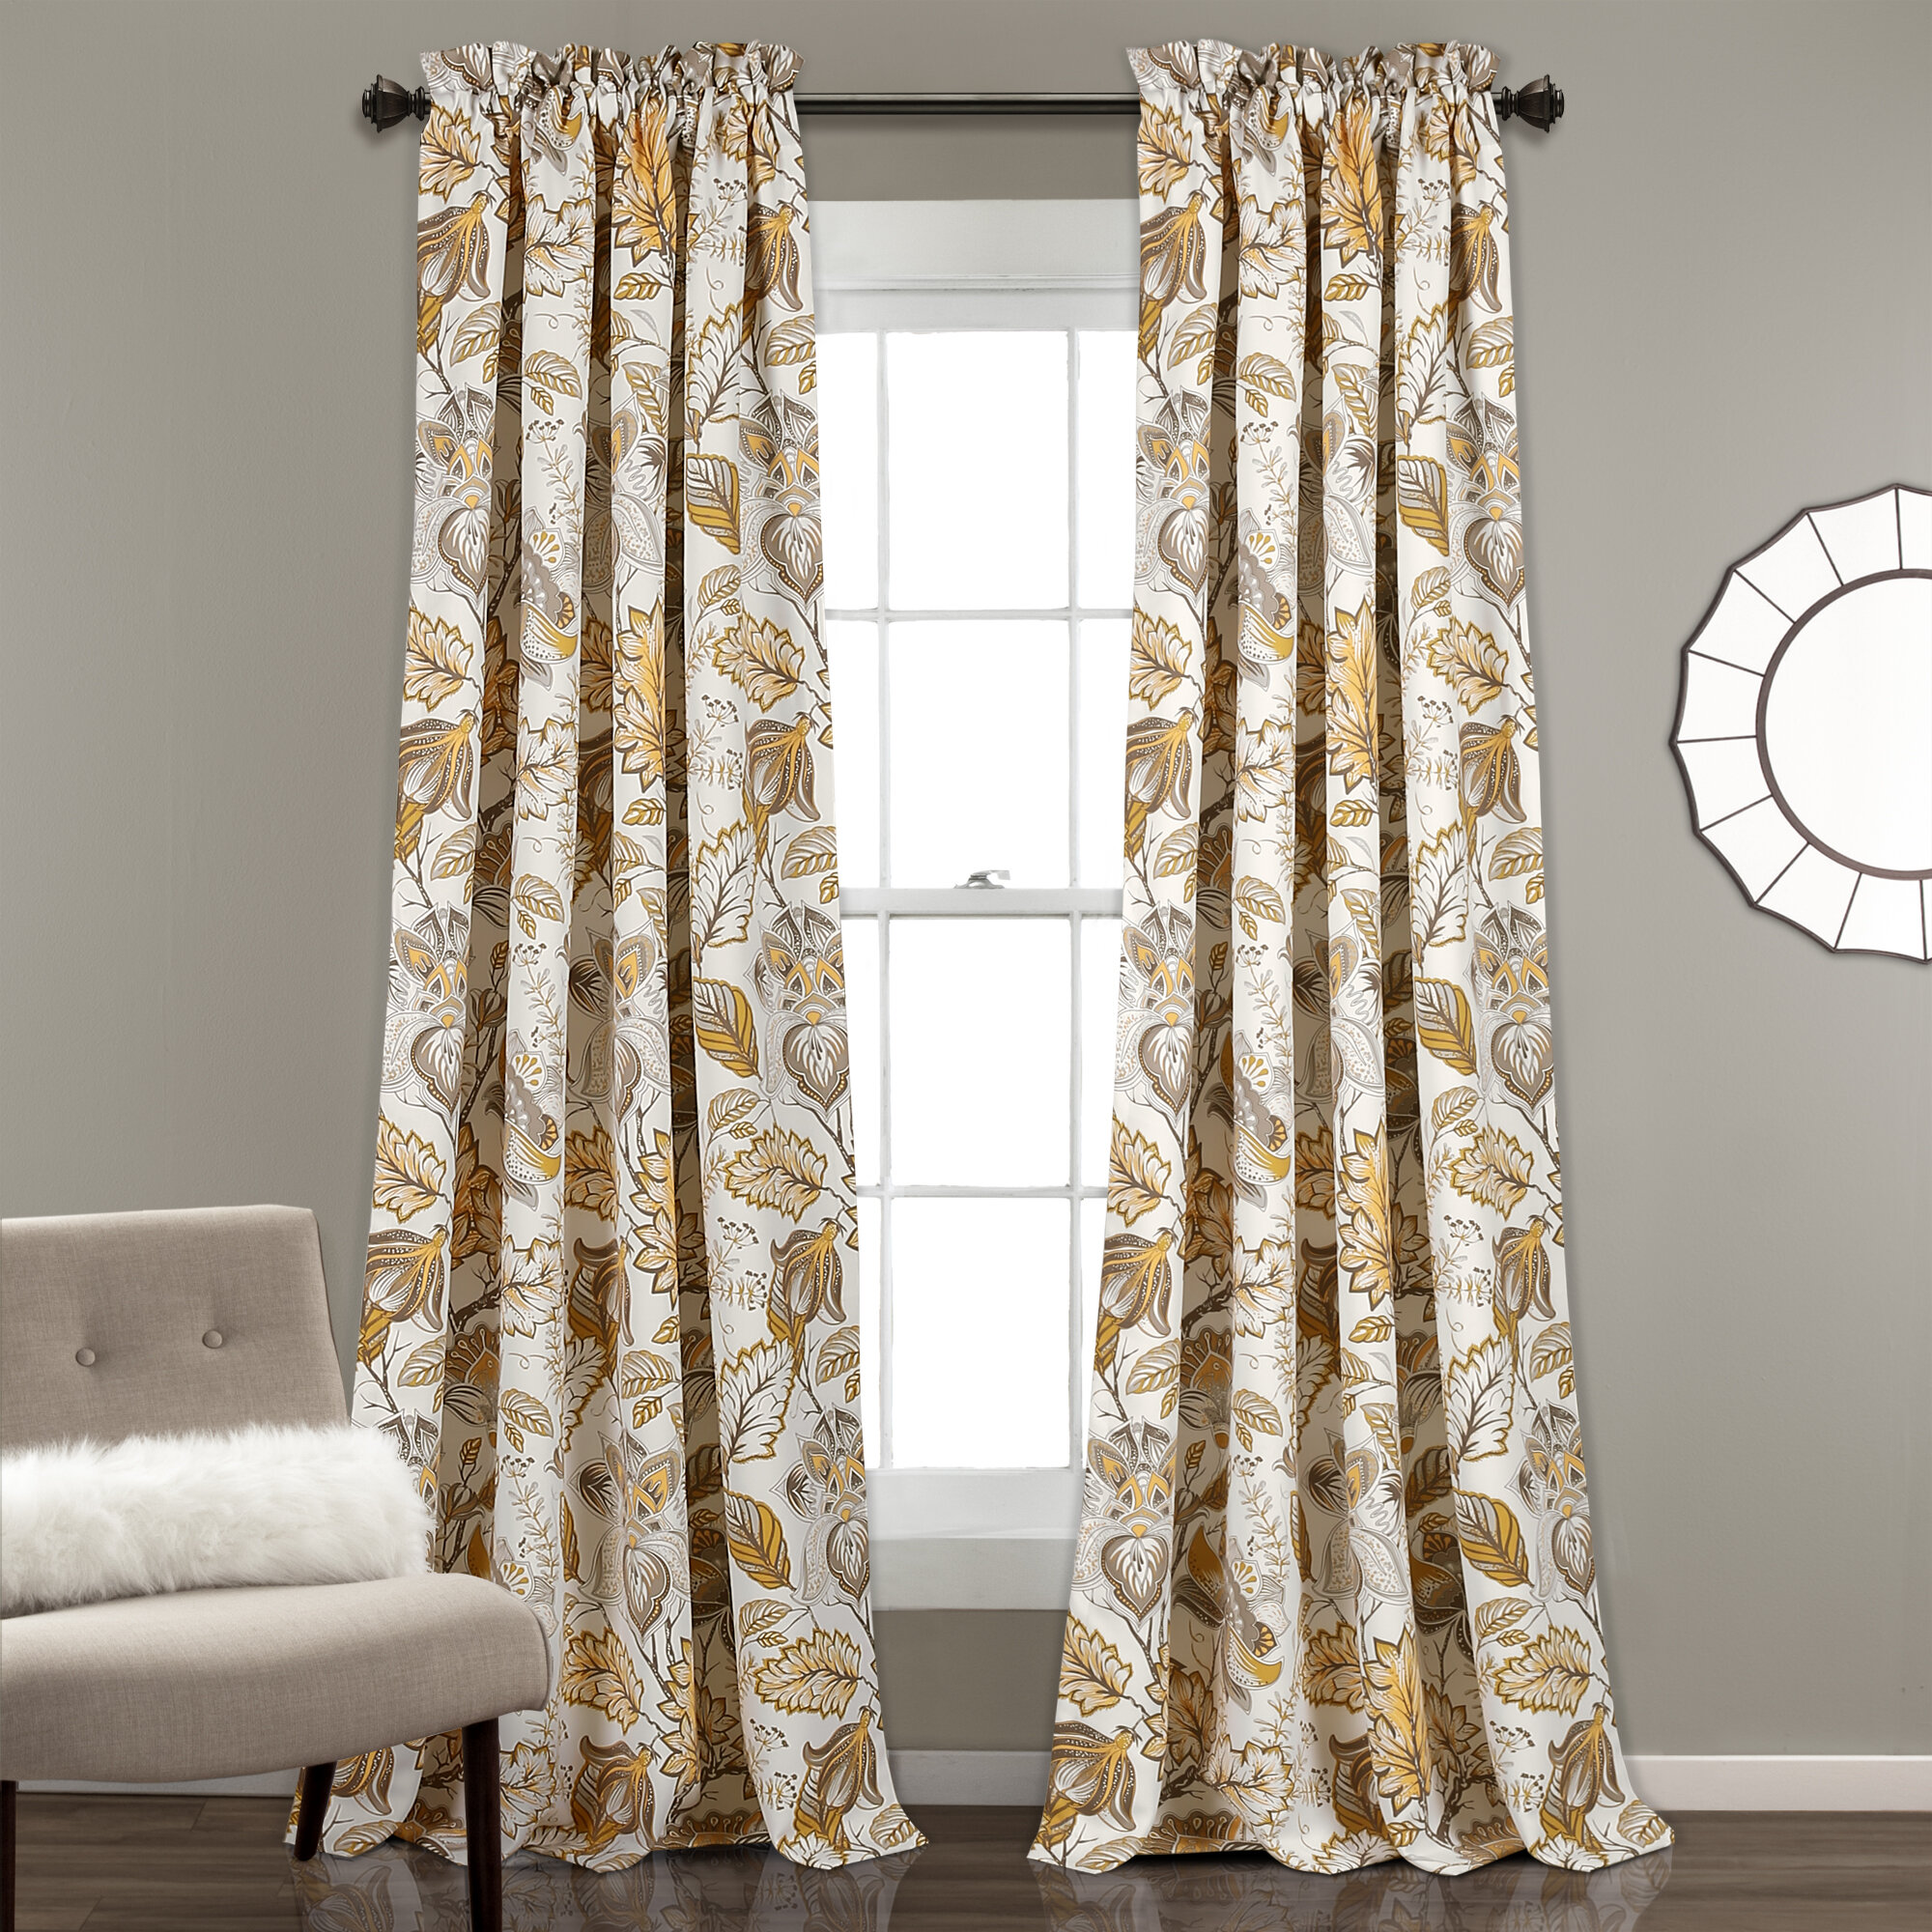 panels a sheer curtain kitchen with wide present panel floral vision waverly long drapes valances also extra door curtains better